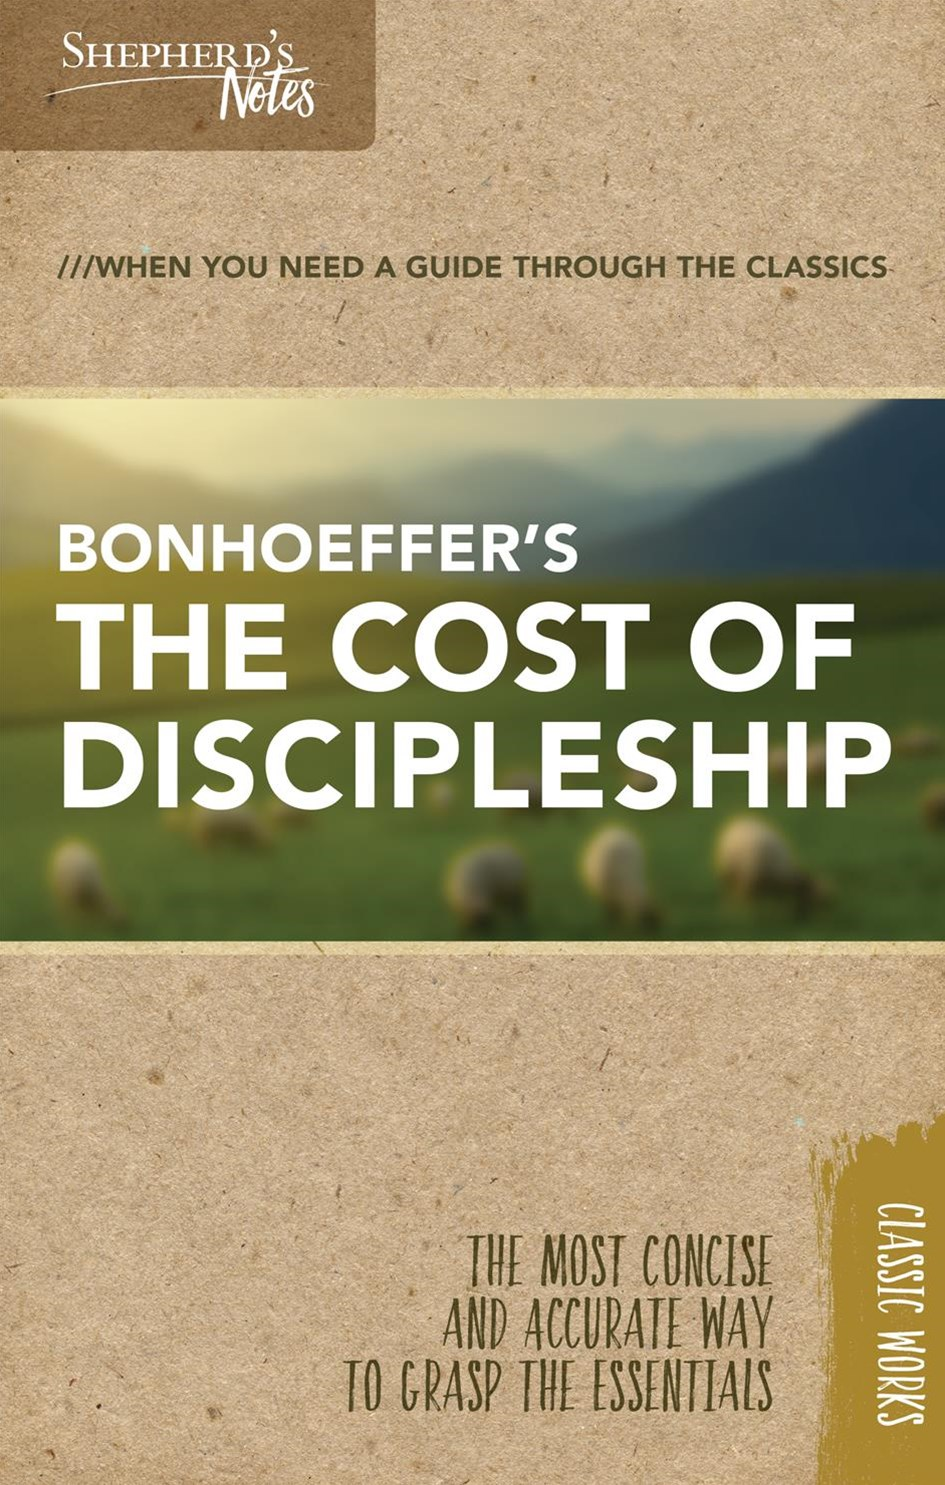 Shepherd's Notes the Cost of Discipleship